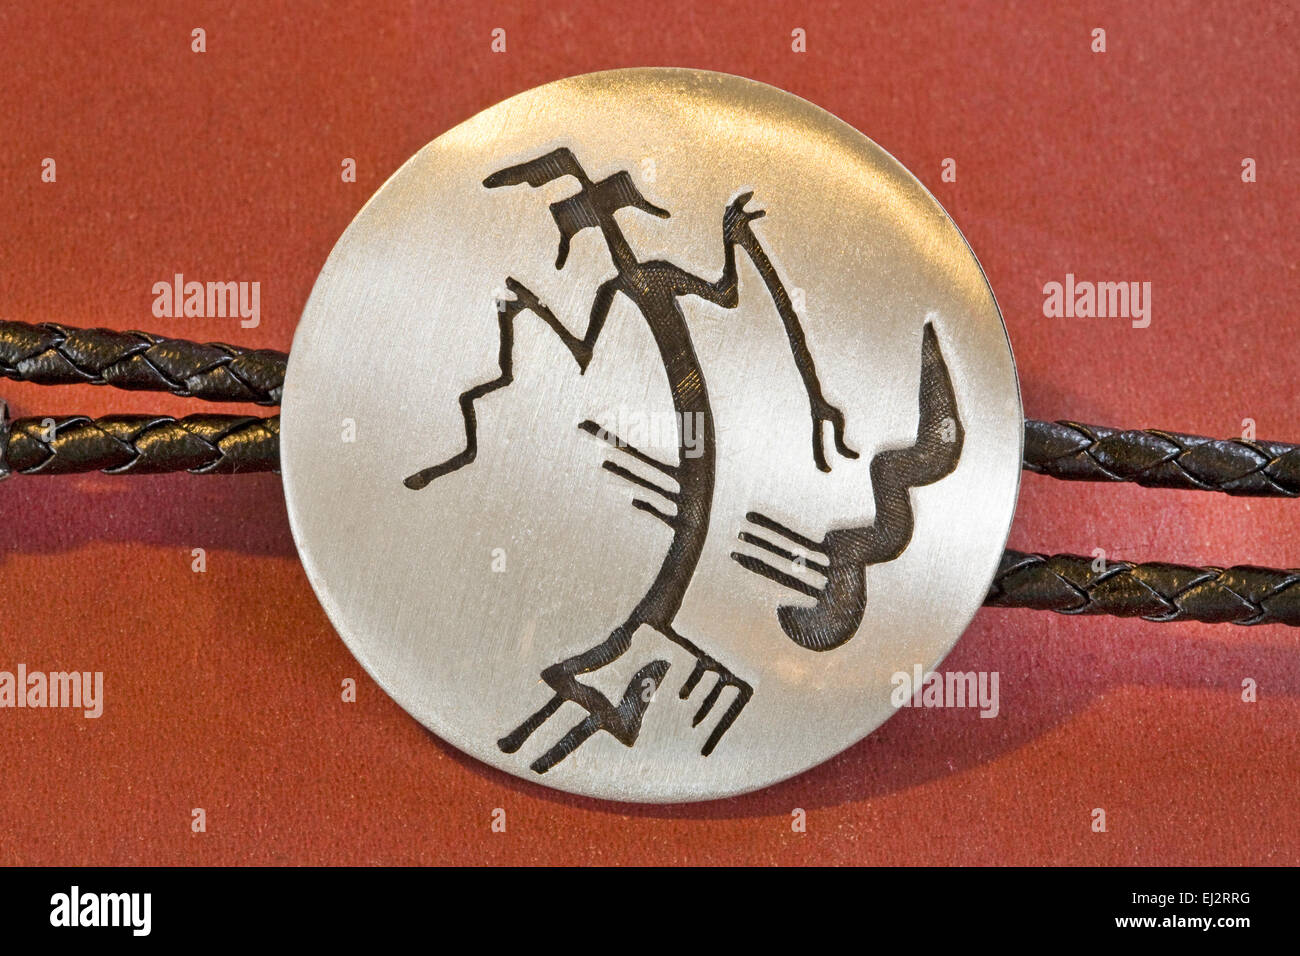 A Navajo Yei Bichei figure, or Rainbow God, on a man's bolo tie from the American Southwest. - Stock Image